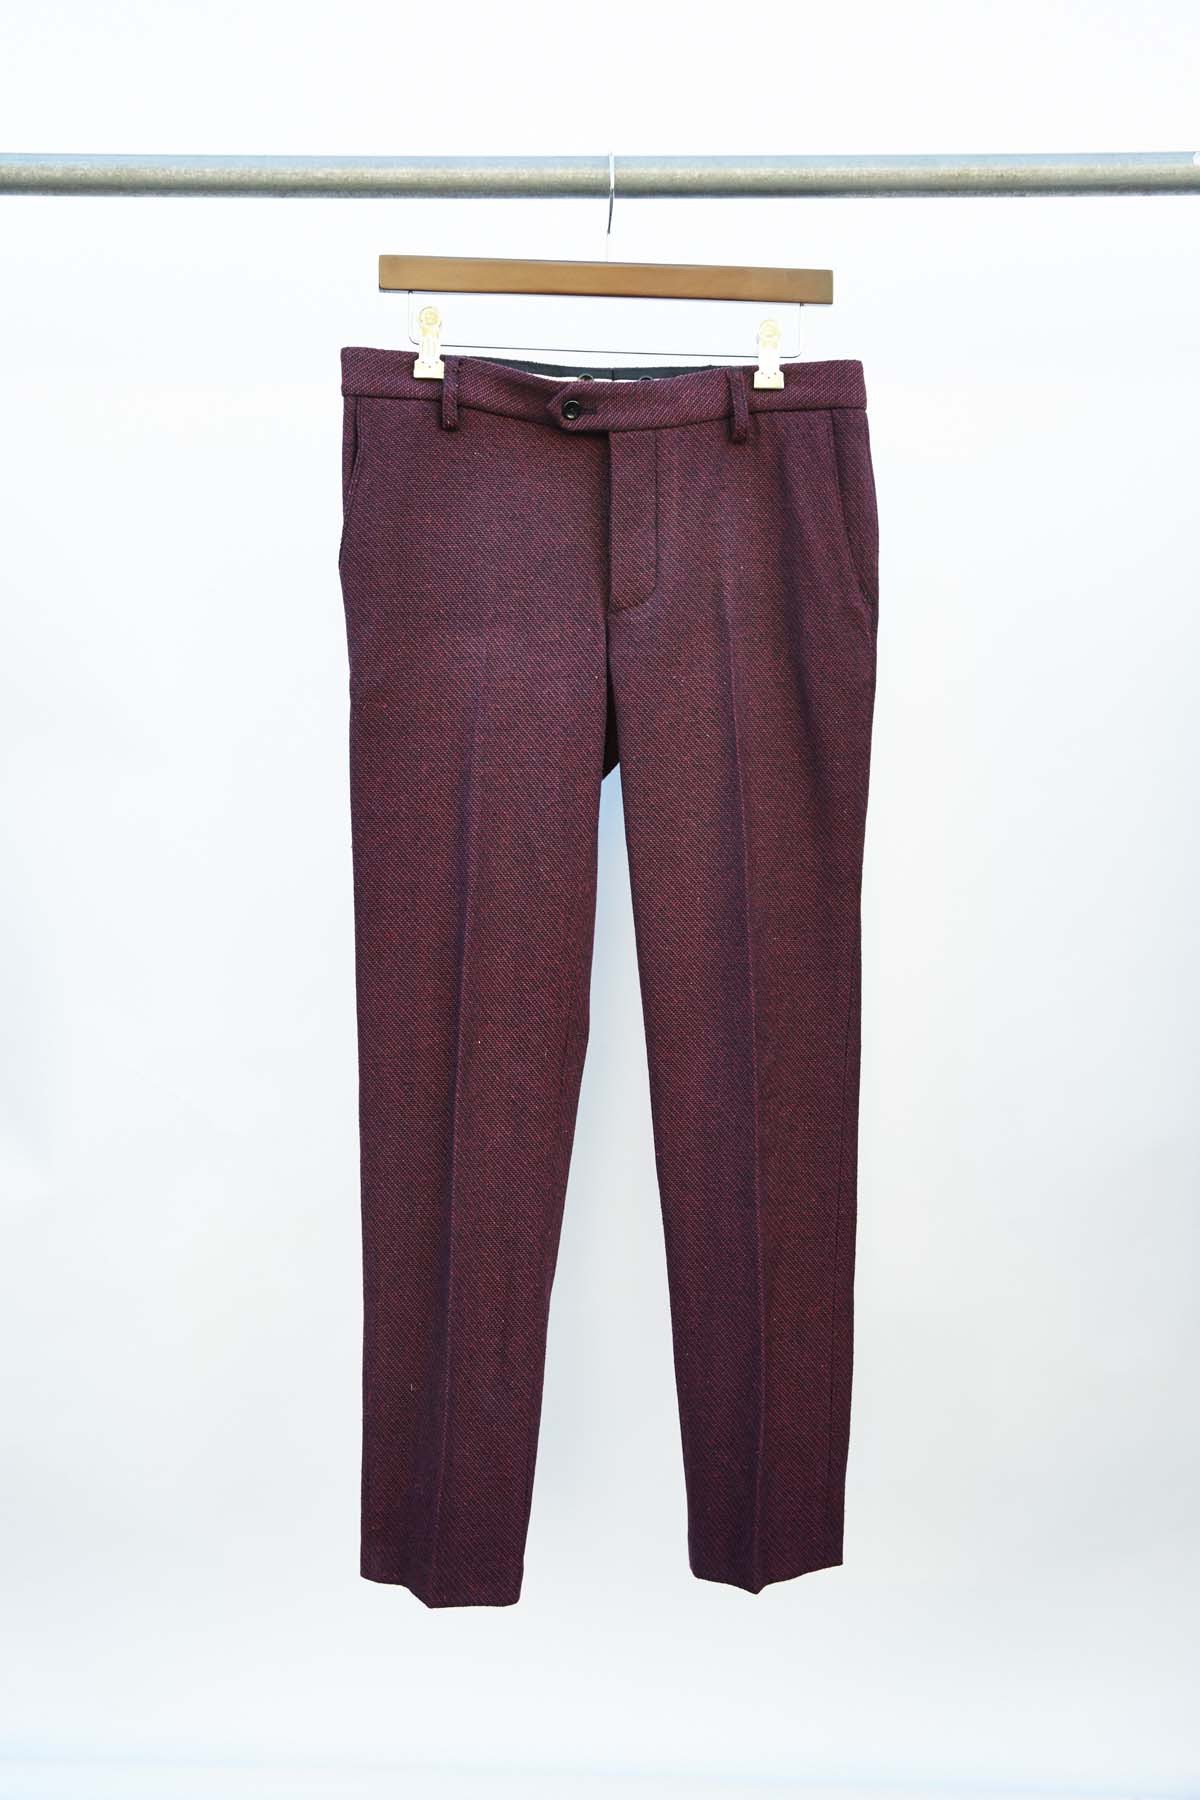 BURGUNDY TWEED SUIT PANTS $350.00